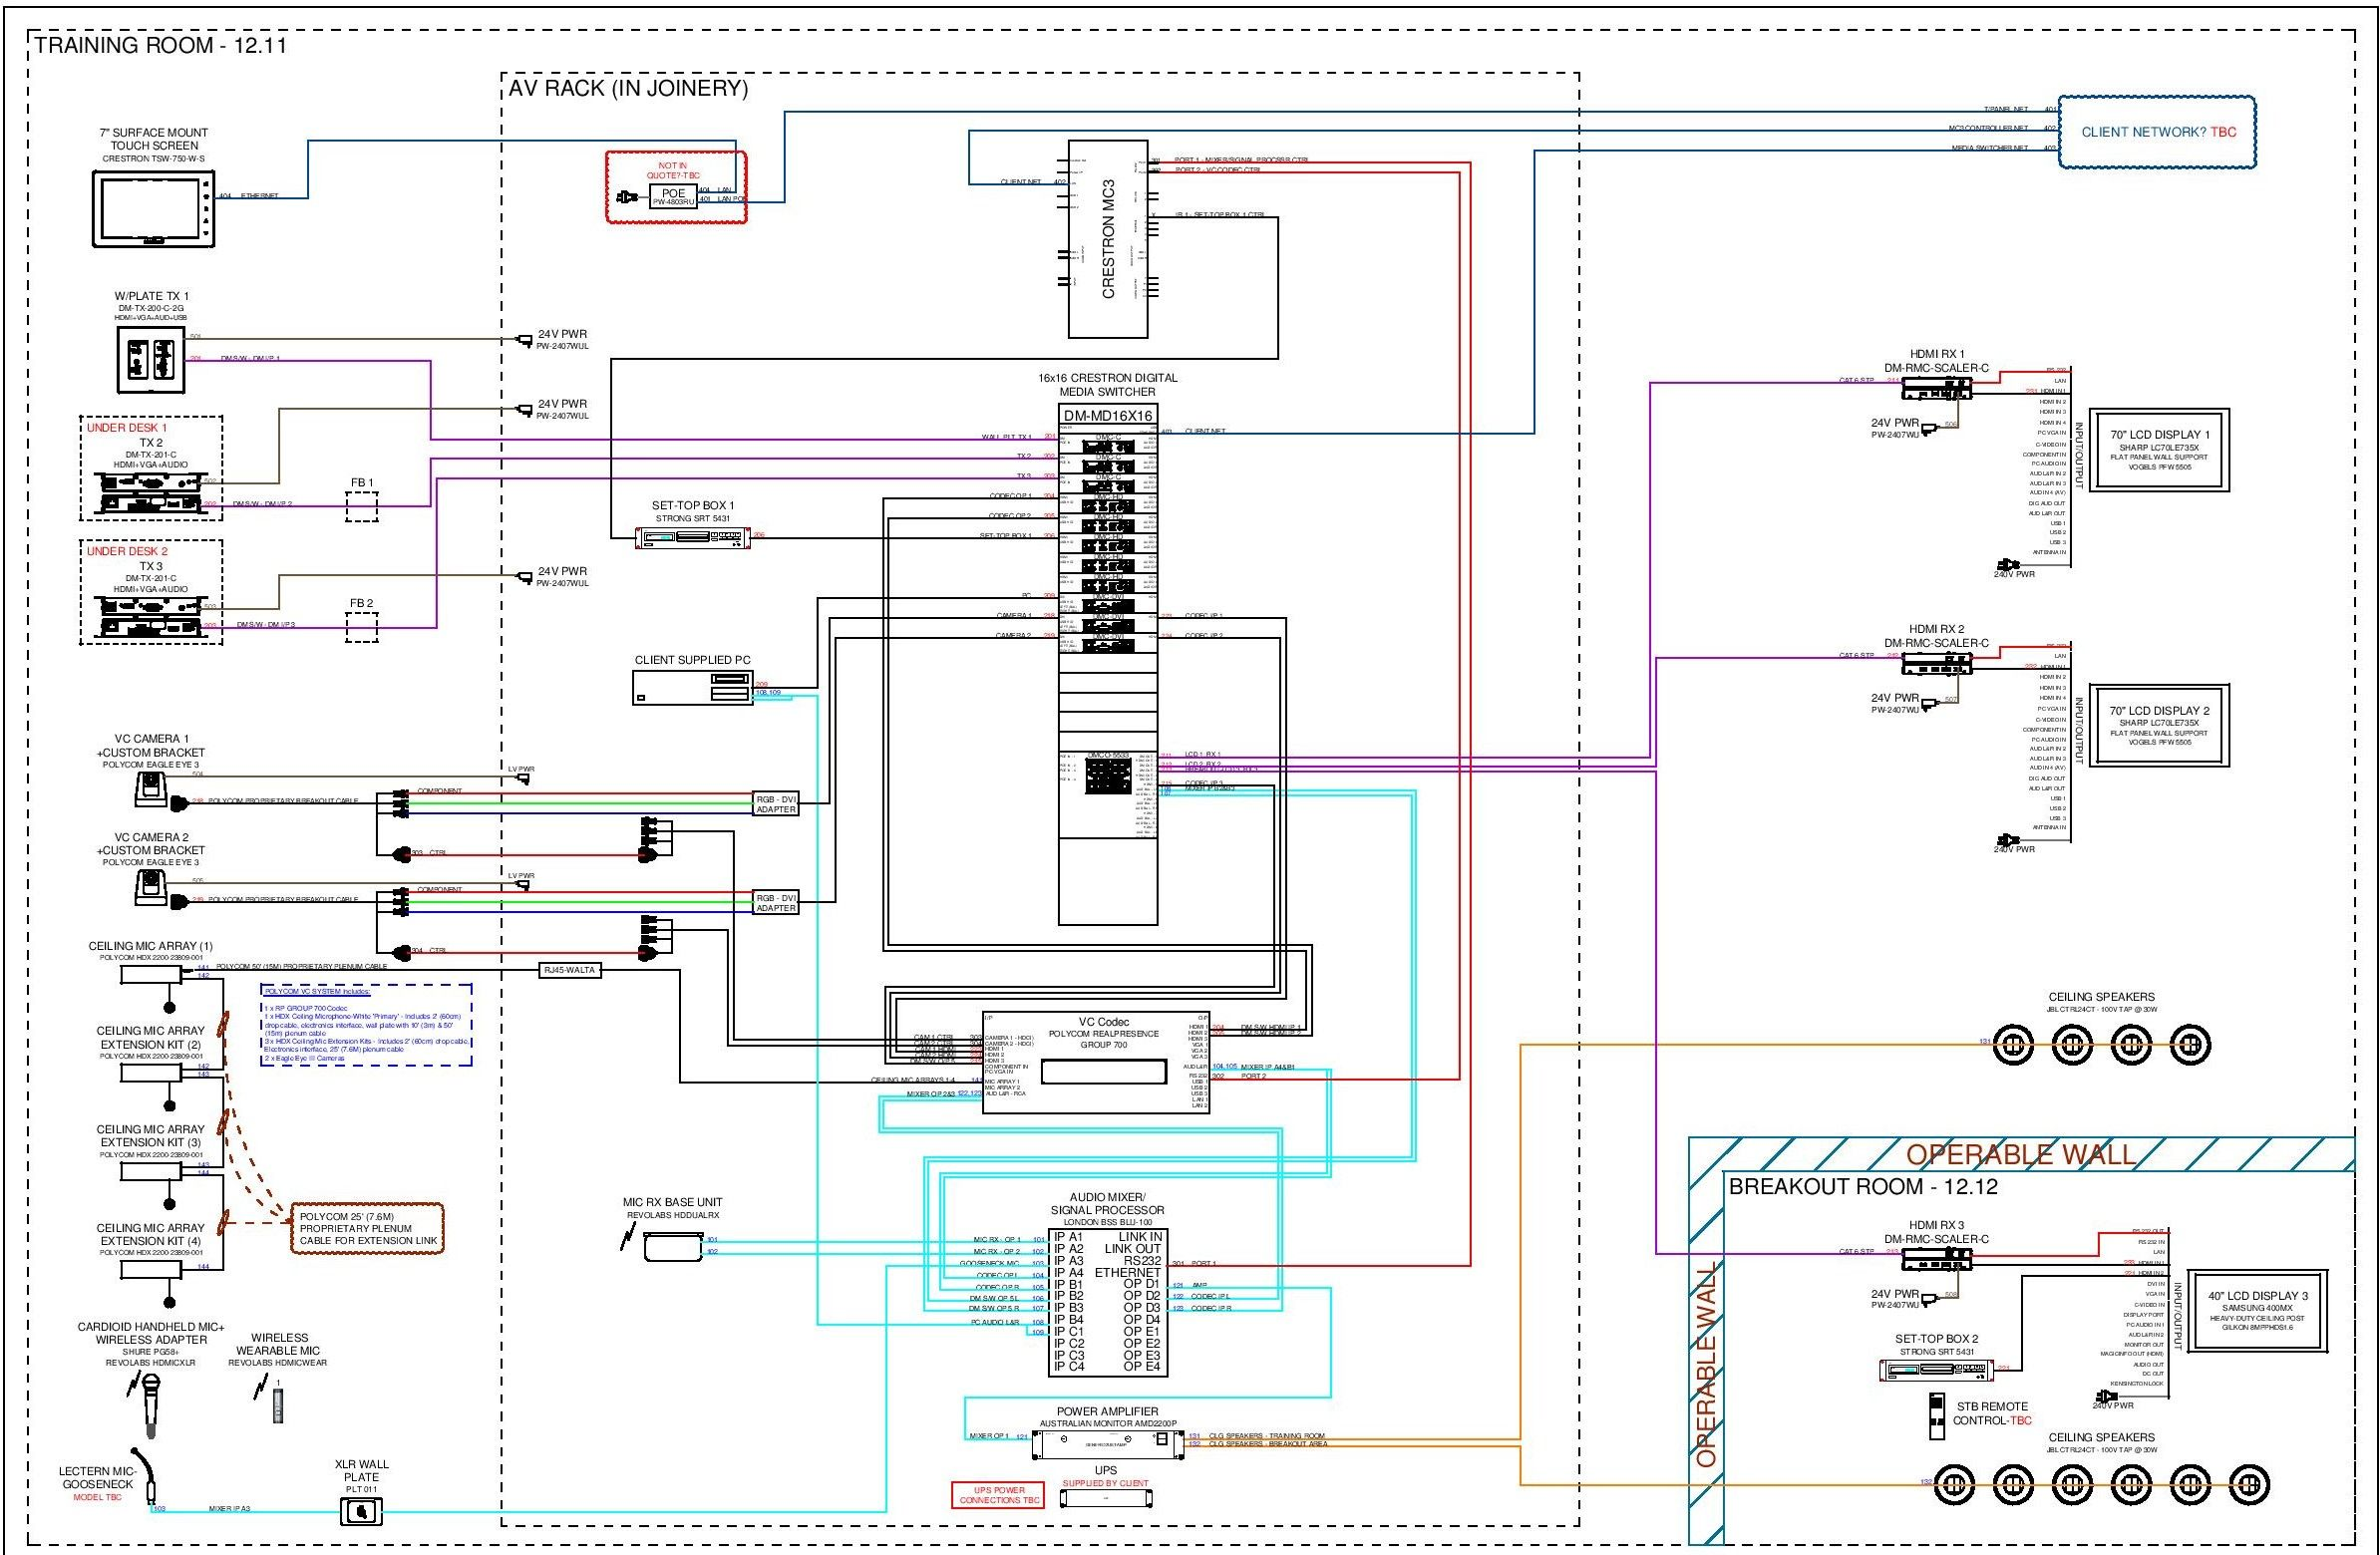 audio wiring plans for nightclub wiring diagram note audio wiring plans for nightclub [ 2387 x 1560 Pixel ]